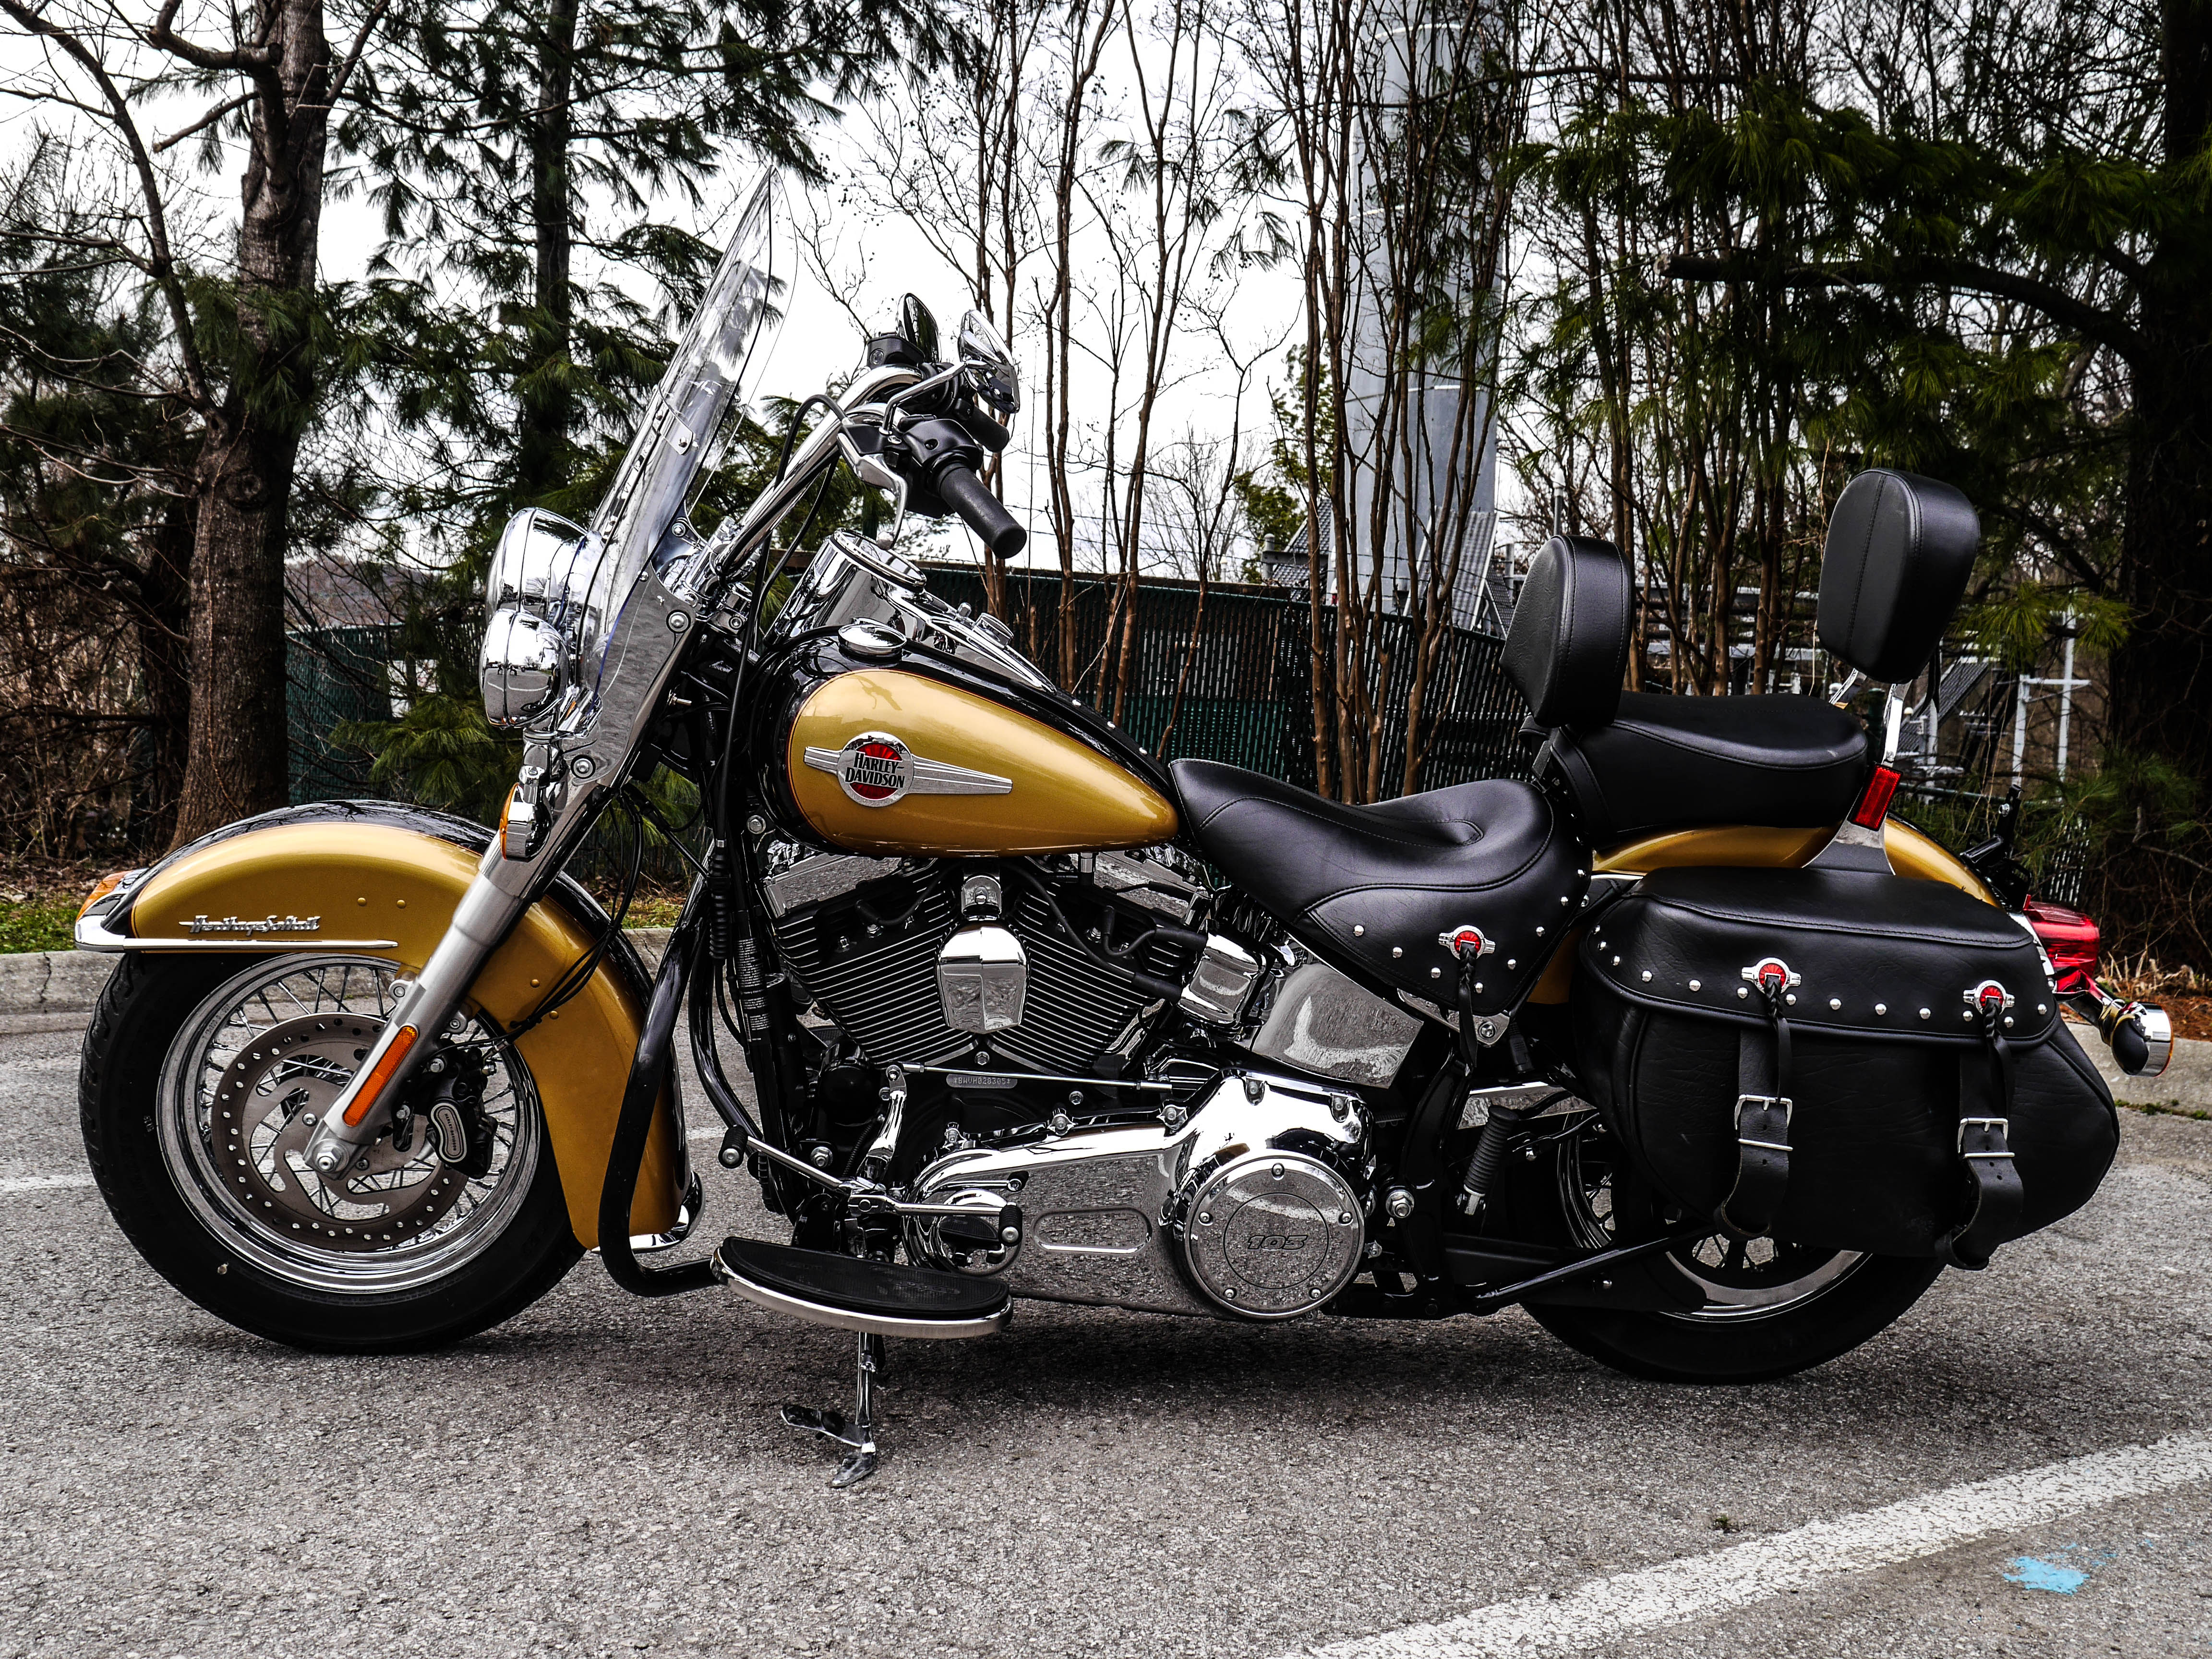 Pre-Owned 2017 Harley-Davidson Heritage Softail Classic in Franklin